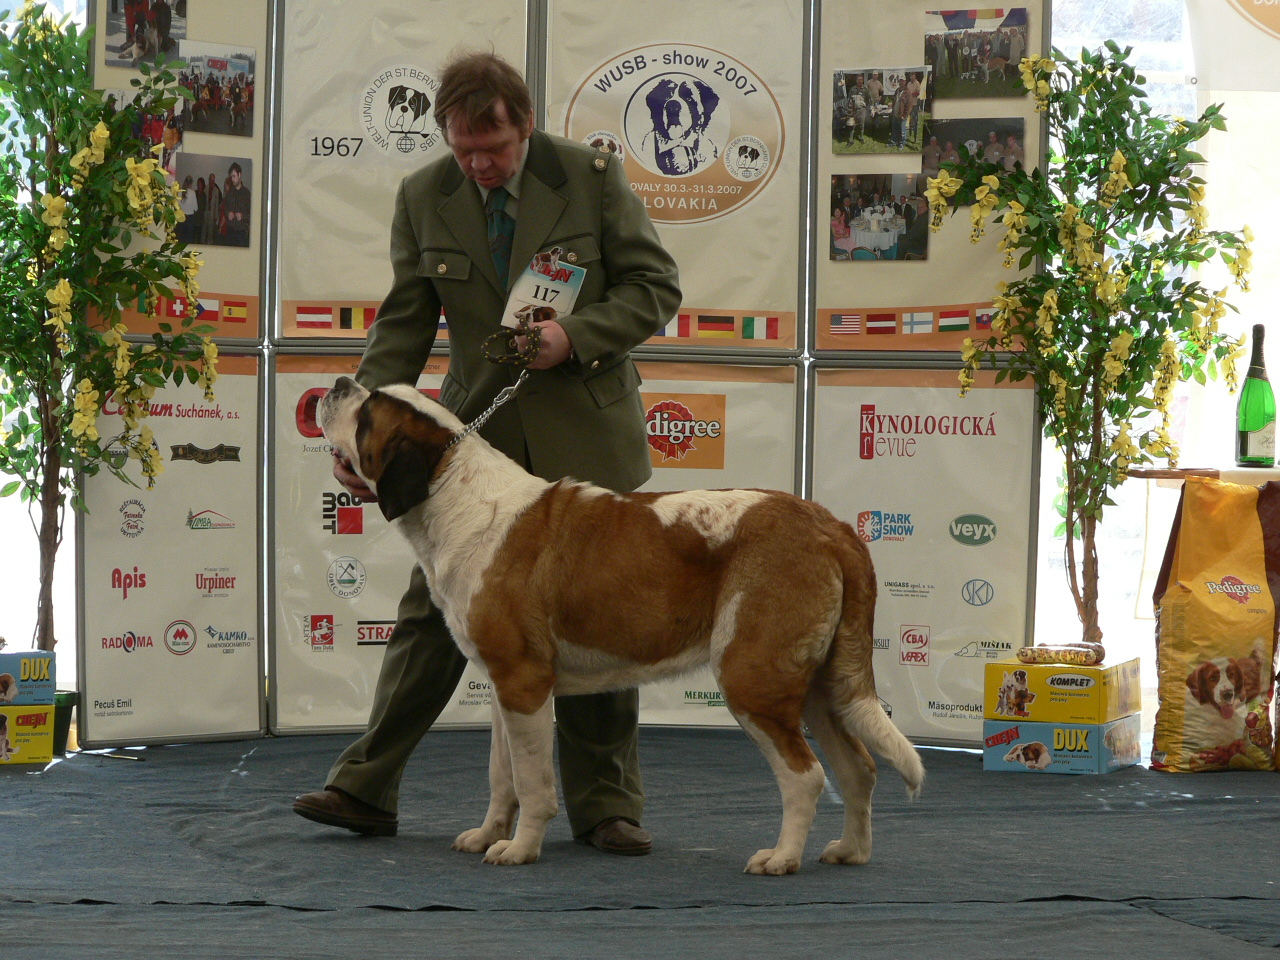 WUSB show 2007 - Donovaly(SK) 174.jpg